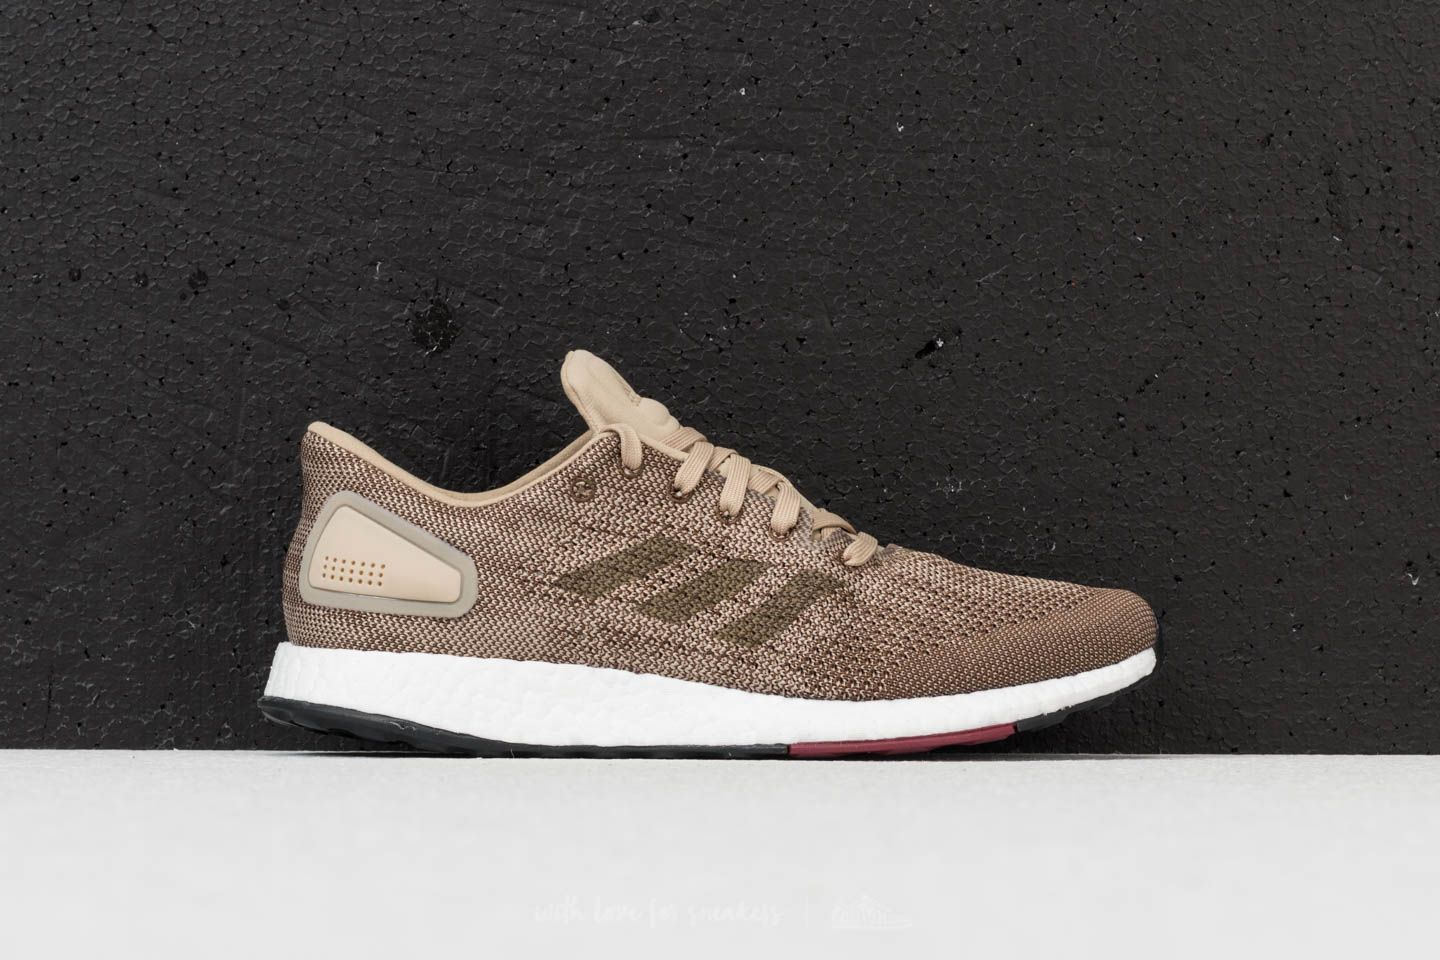 newest 56196 52c69 adidas Pureboost DPR Raw Gold Trace Olive Collegiate Burgundy at a great  price £